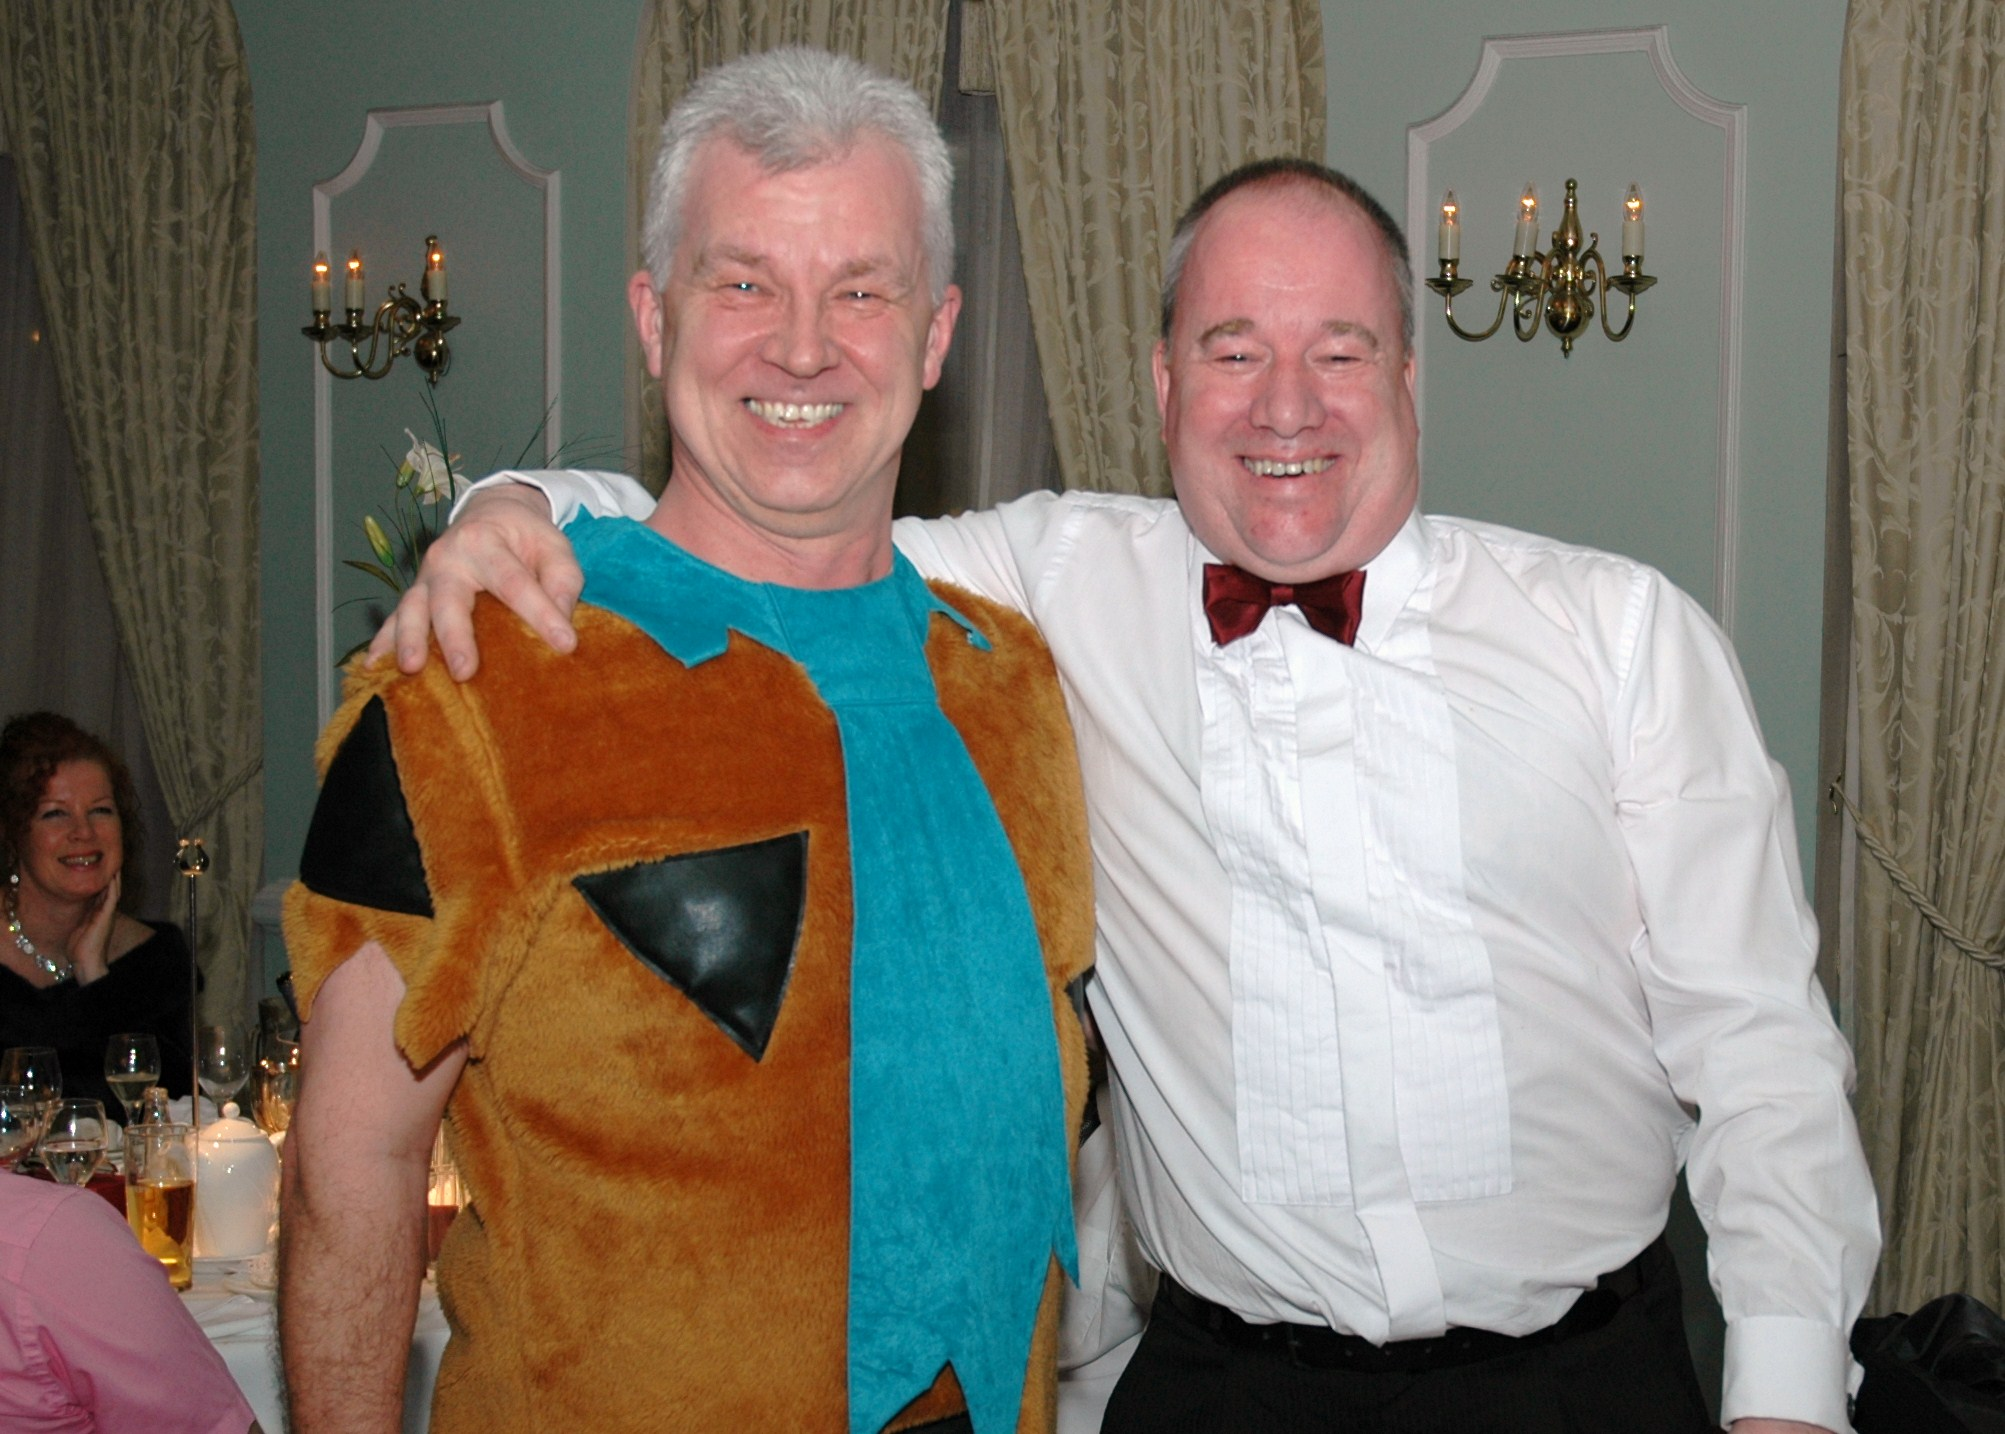 Home Instead Newcastle-under-Lyme owner Paul Edden and Phil Newell at the Westfield Sports Car Club dinner